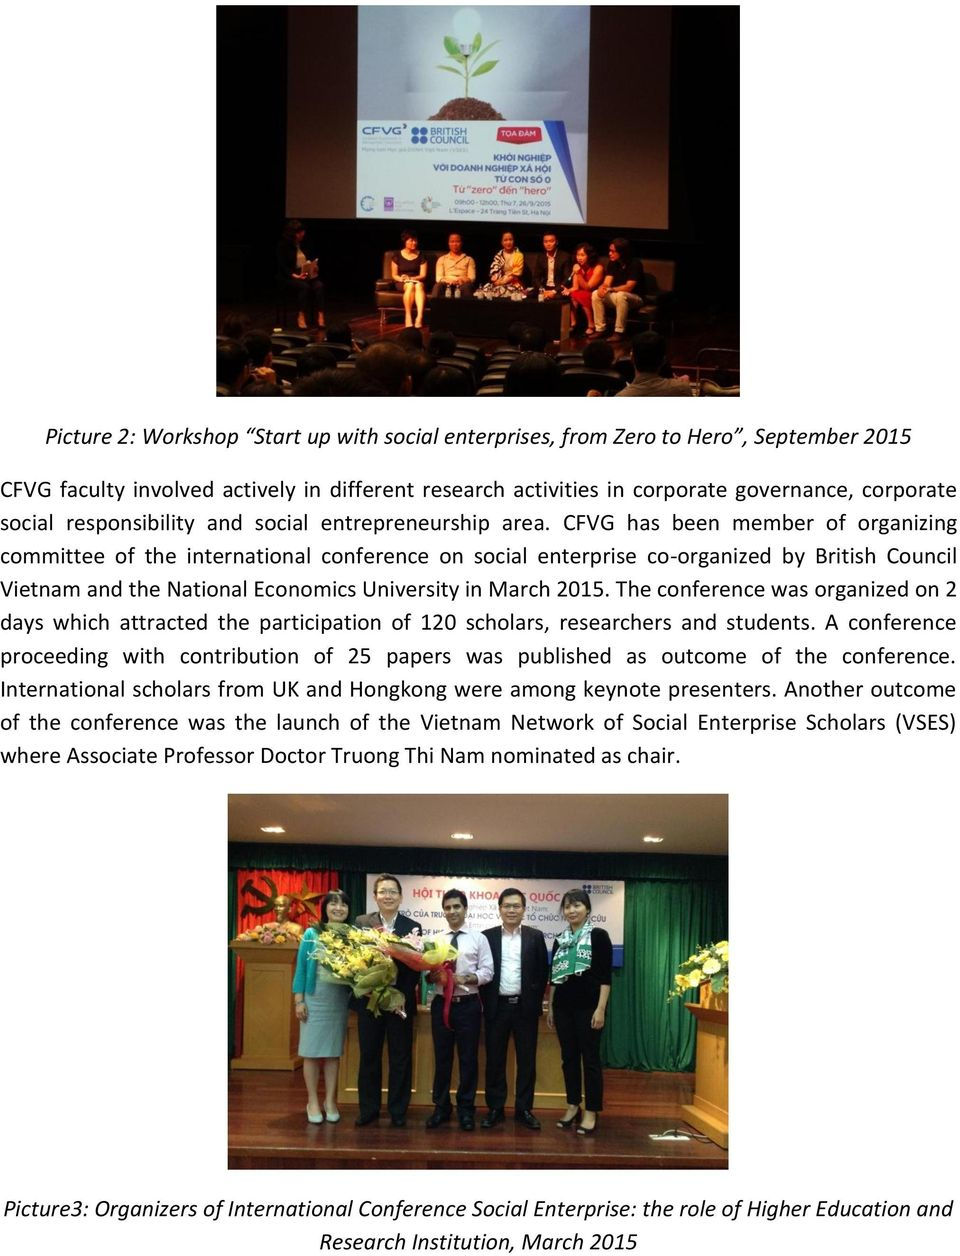 CFVG has been member of organizing committee of the international conference on social enterprise co-organized by British Council Vietnam and the National Economics University in March 2015.